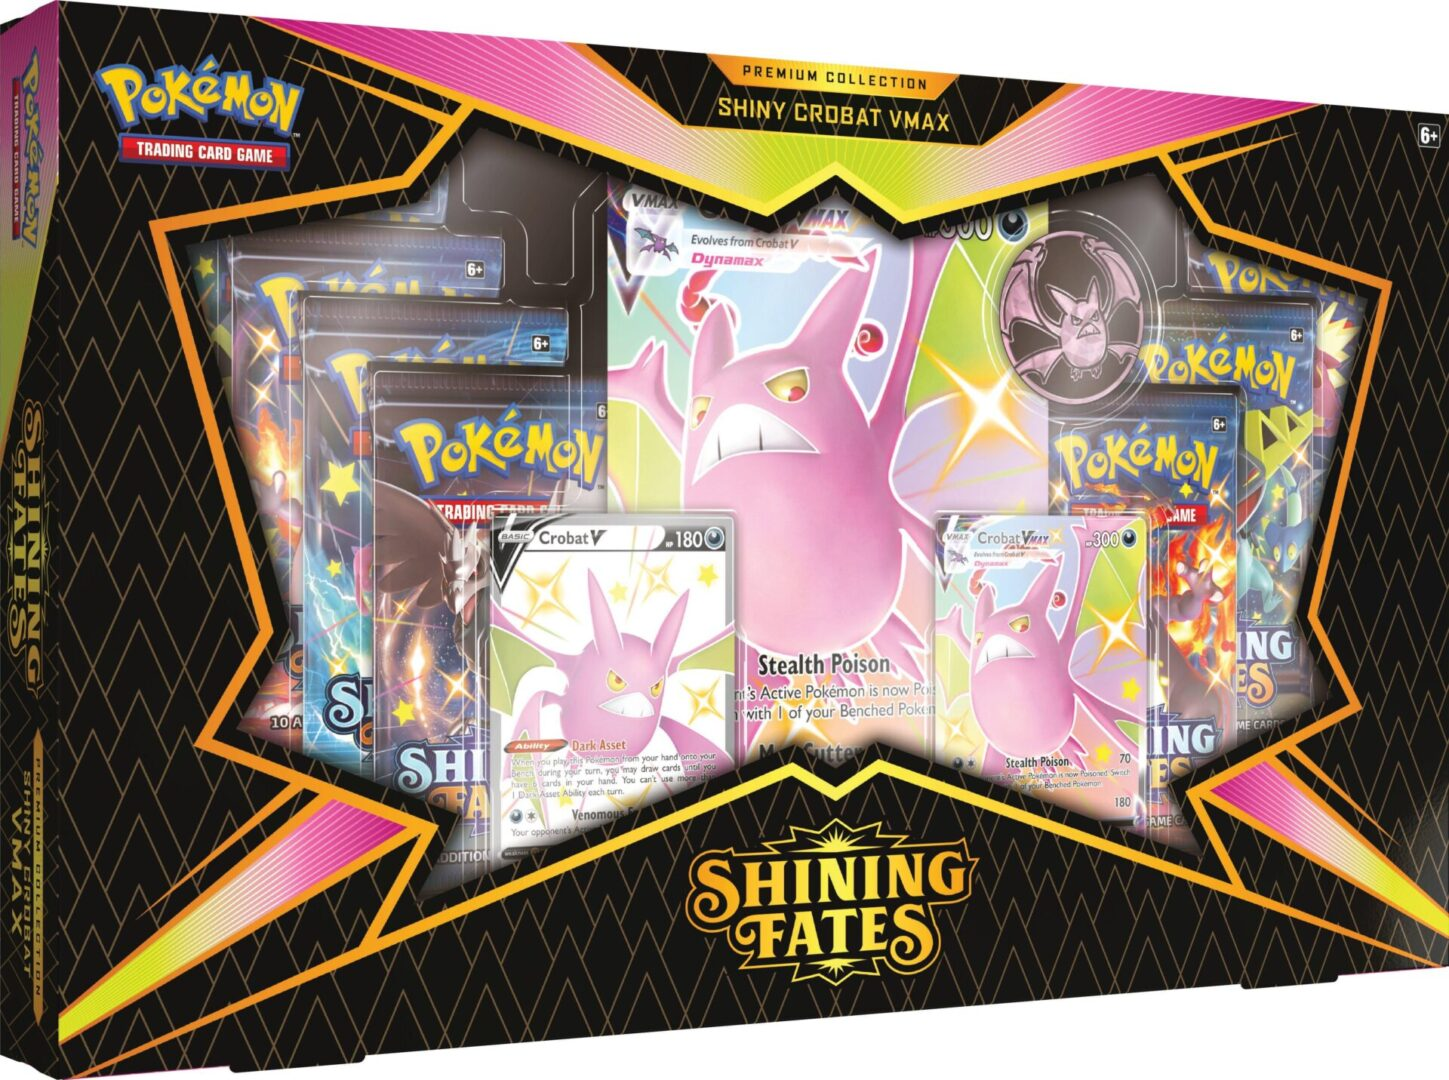 Shining Fates Crobat V Premium Collection